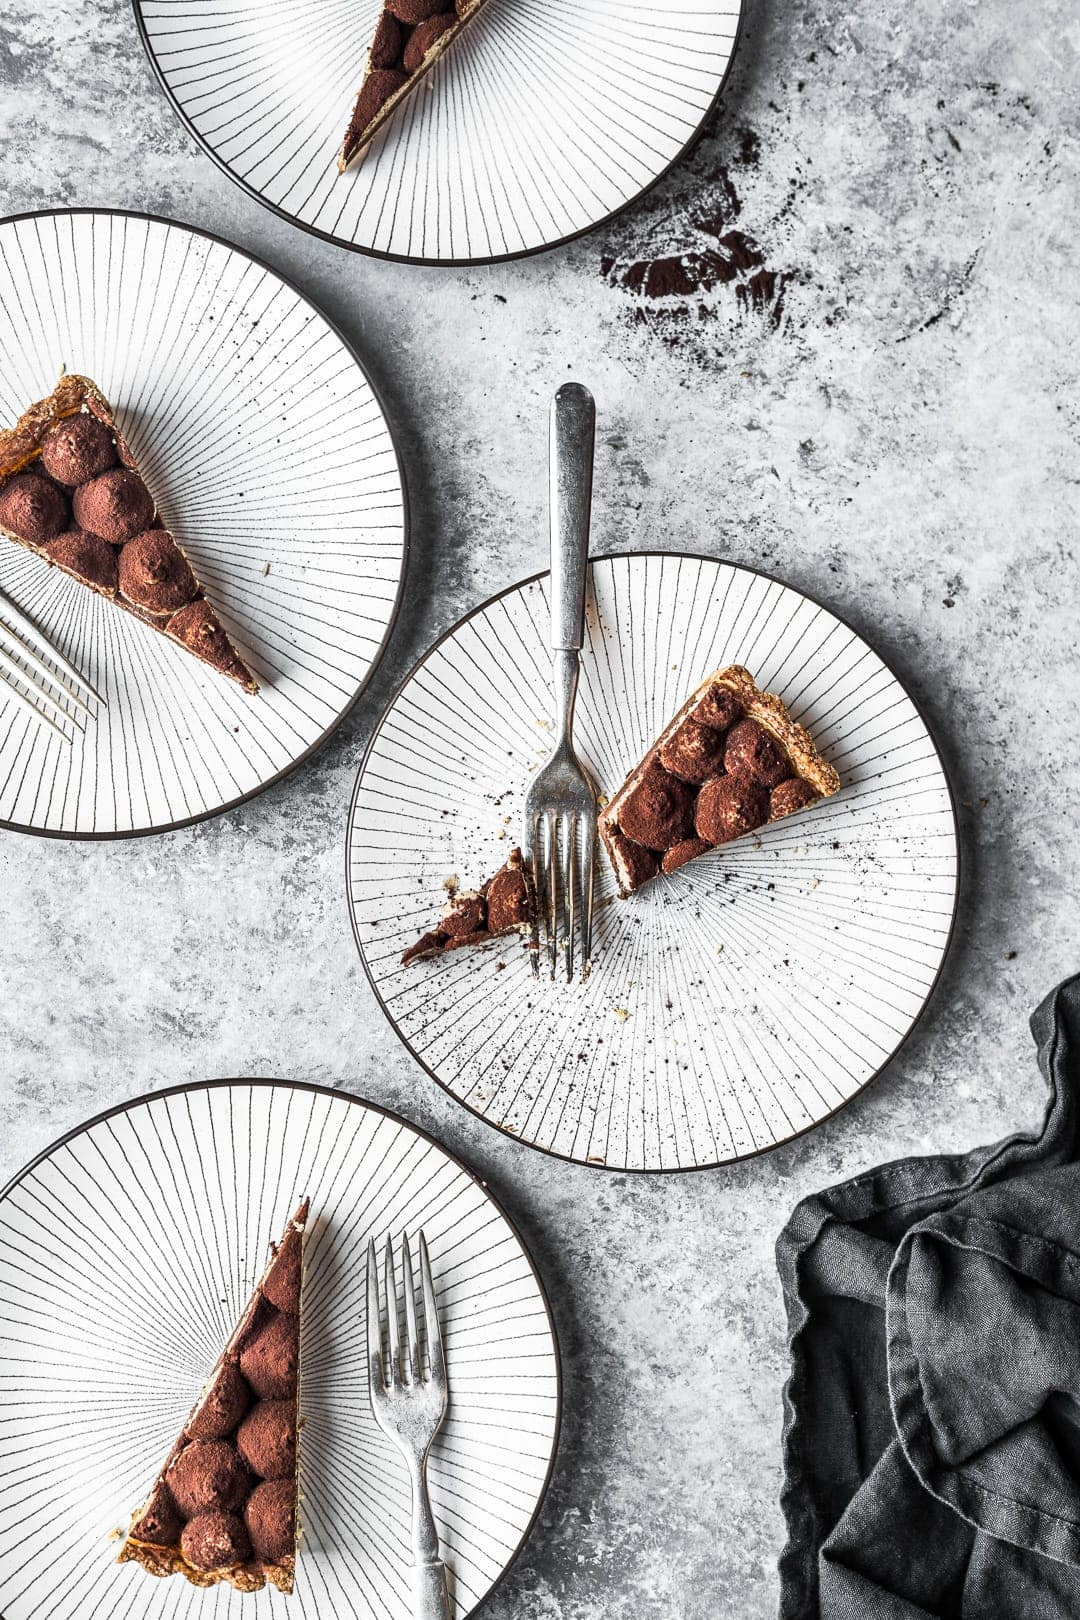 Four plates on a grey background with slices of tart and forks on plates